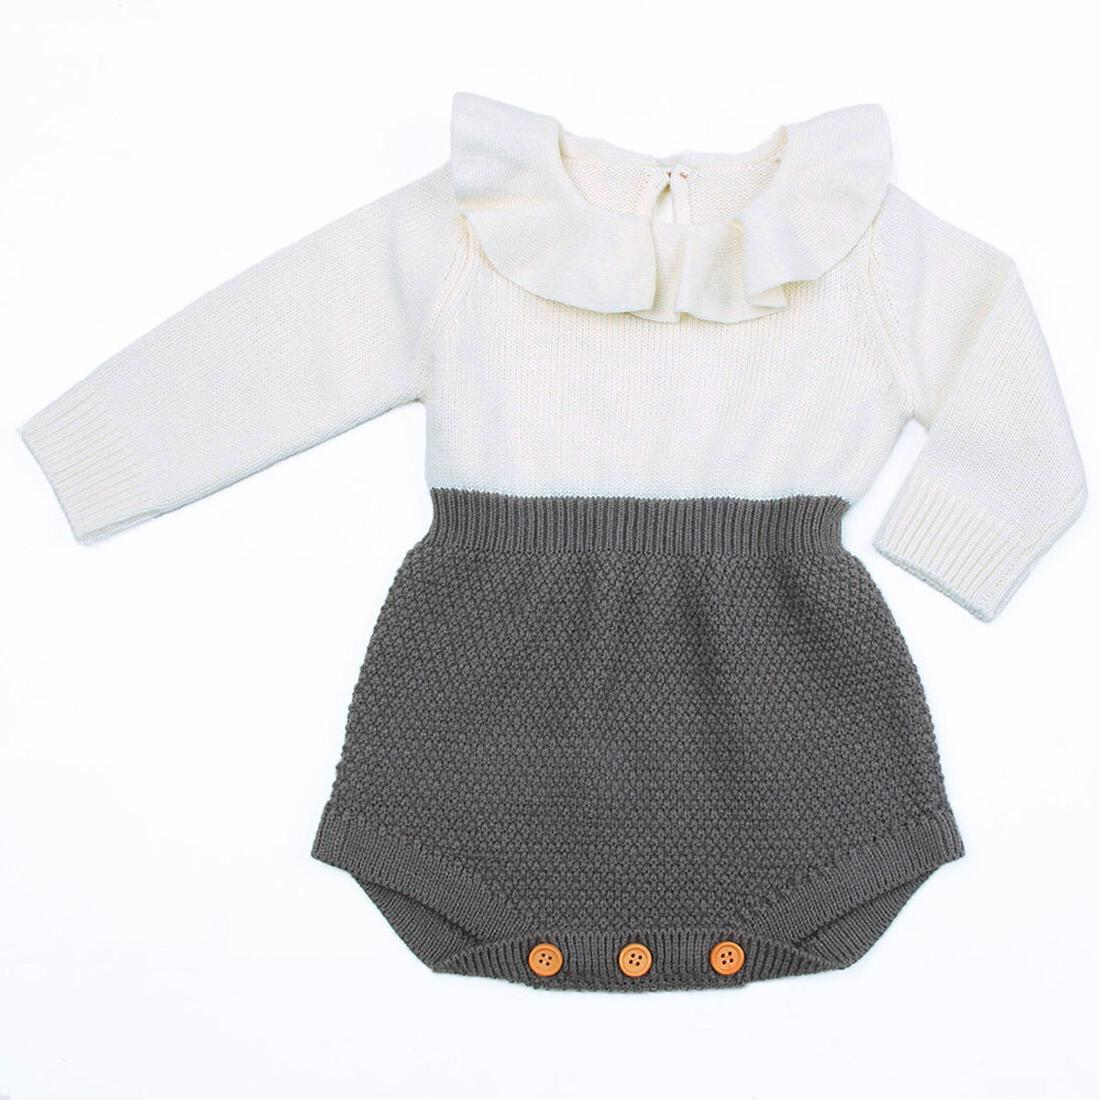 2019 Autumn Winter <font><b>Baby</b></font> Clothes Toddler <font><b>Girl</b></font> Sweaters Wool Knitting Outfits